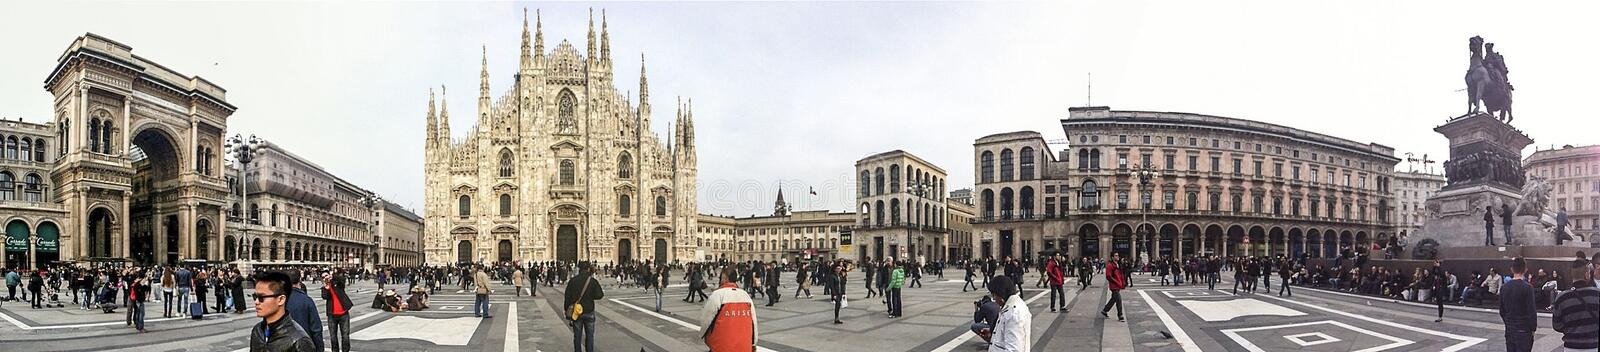 Piazza Duomo in Milan royalty free stock photography